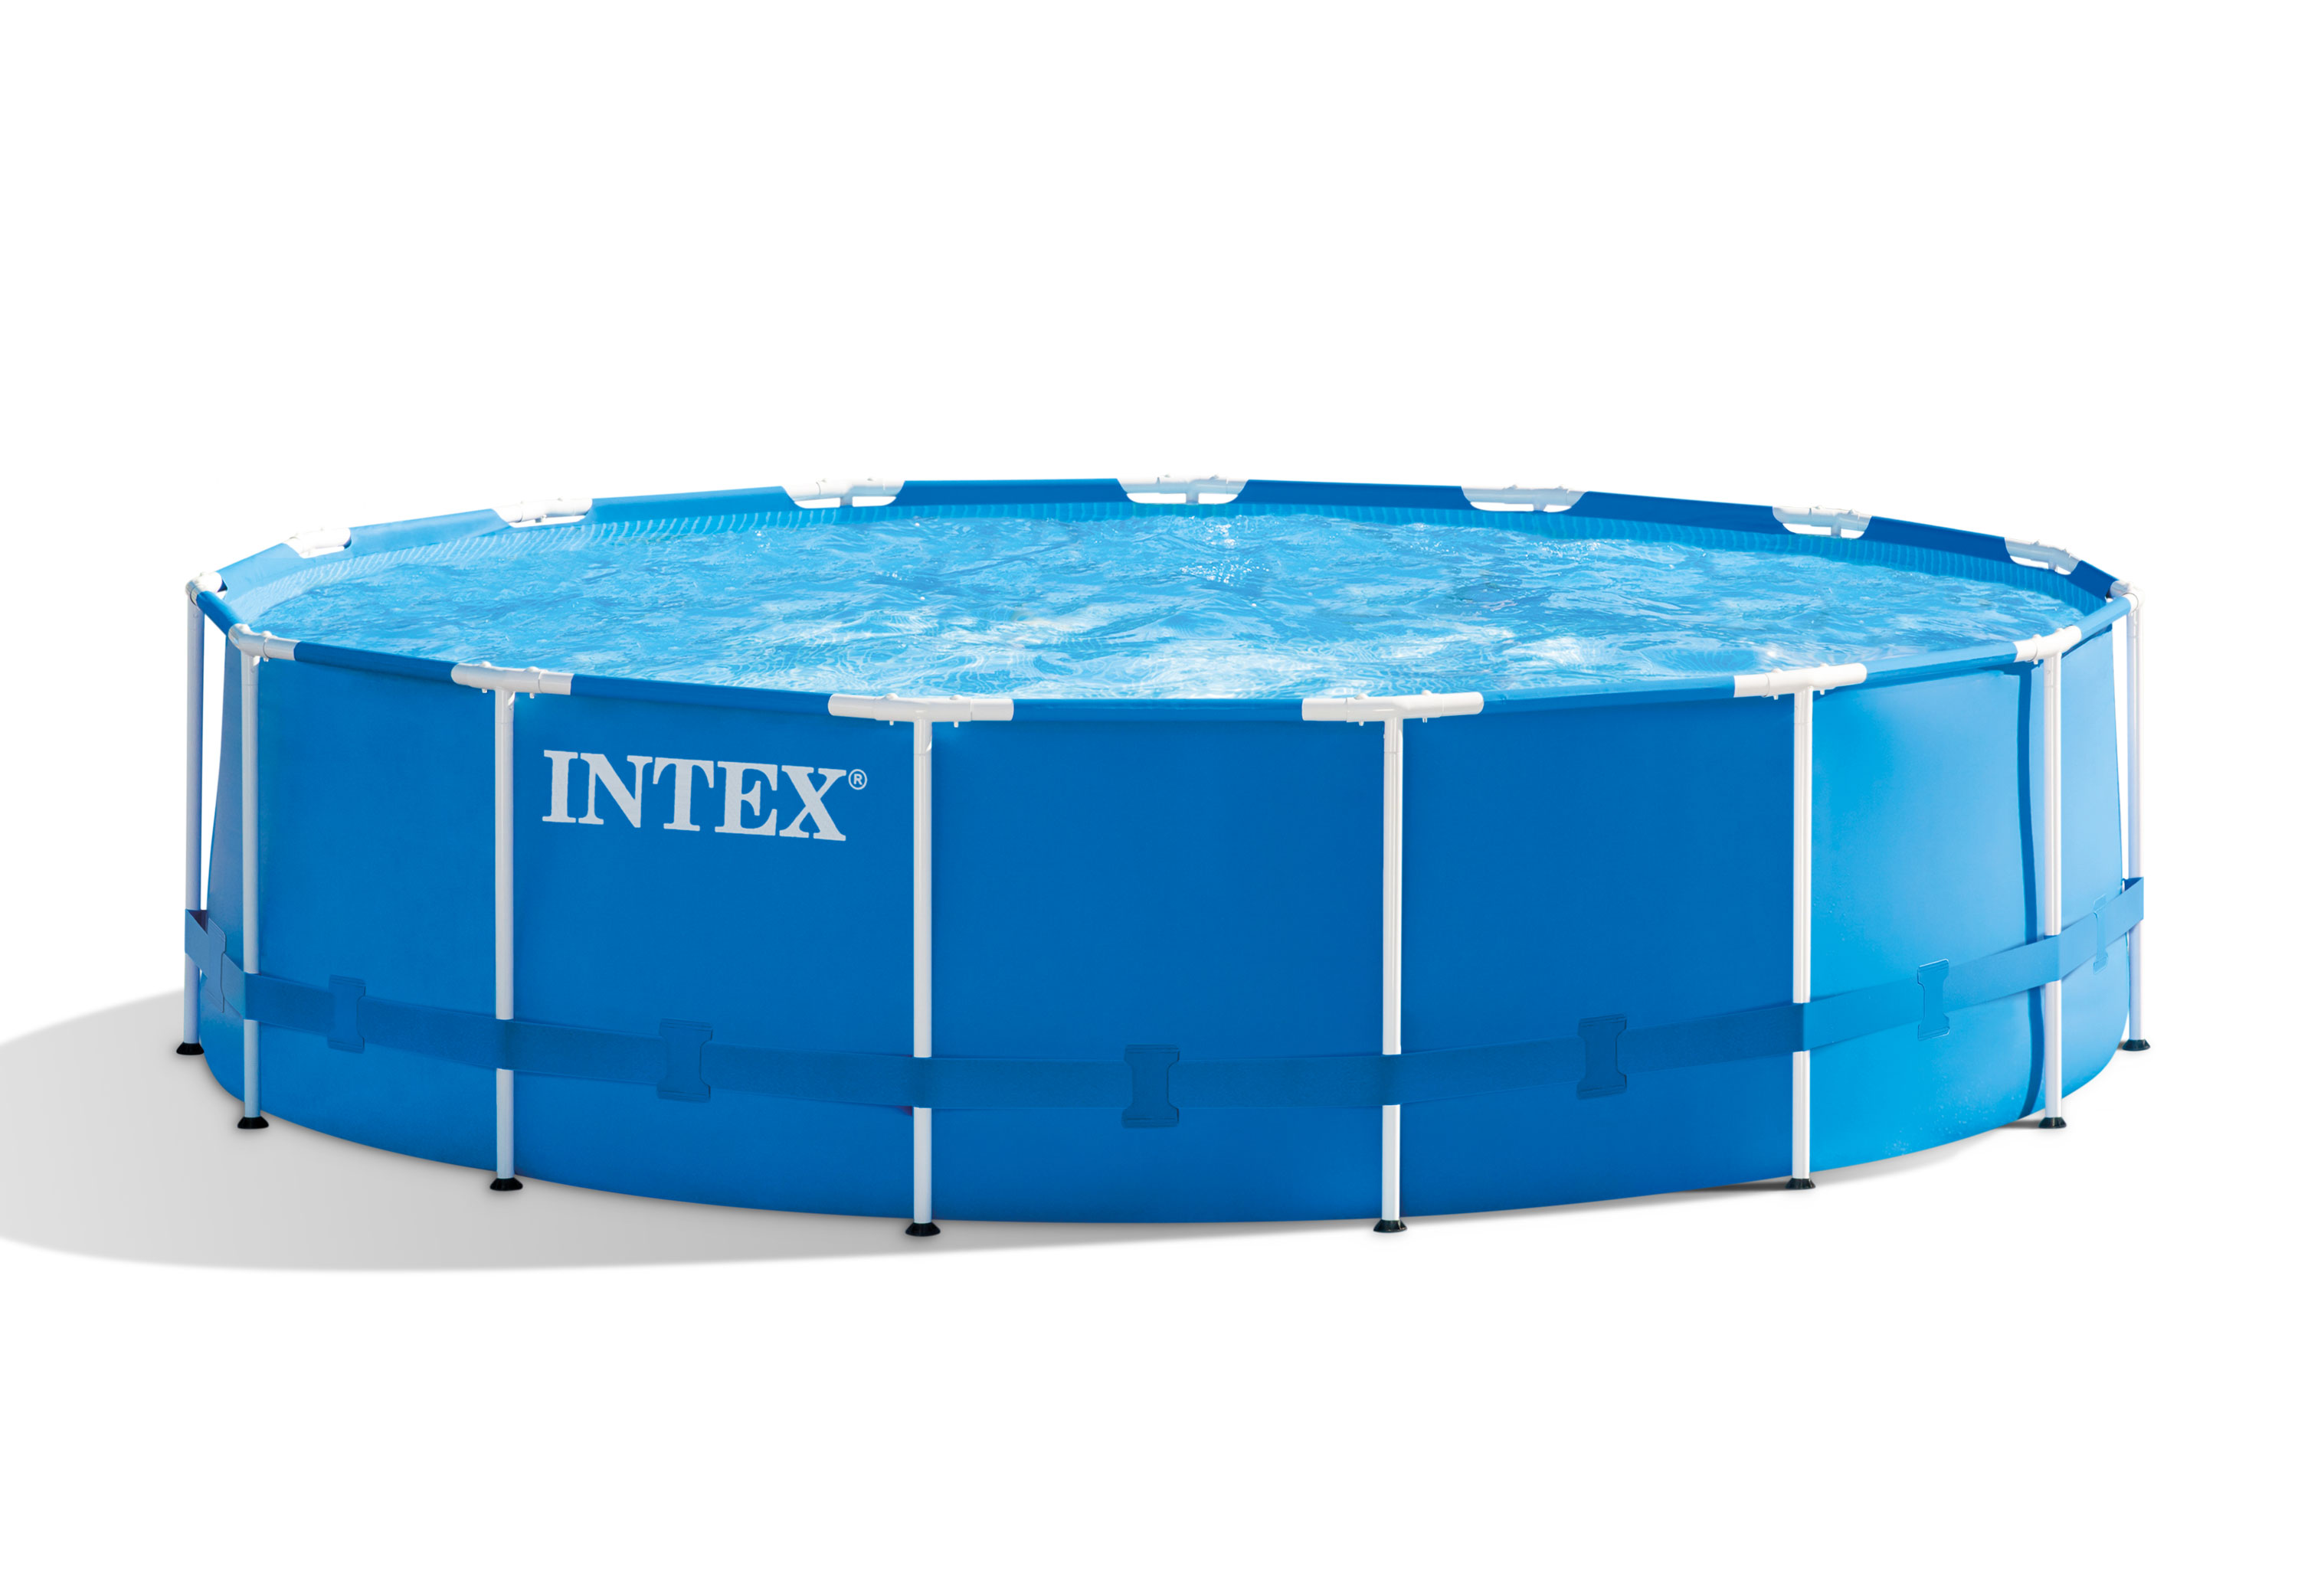 intex 15 39 x 48 metal frame swimming pool set w pump and. Black Bedroom Furniture Sets. Home Design Ideas